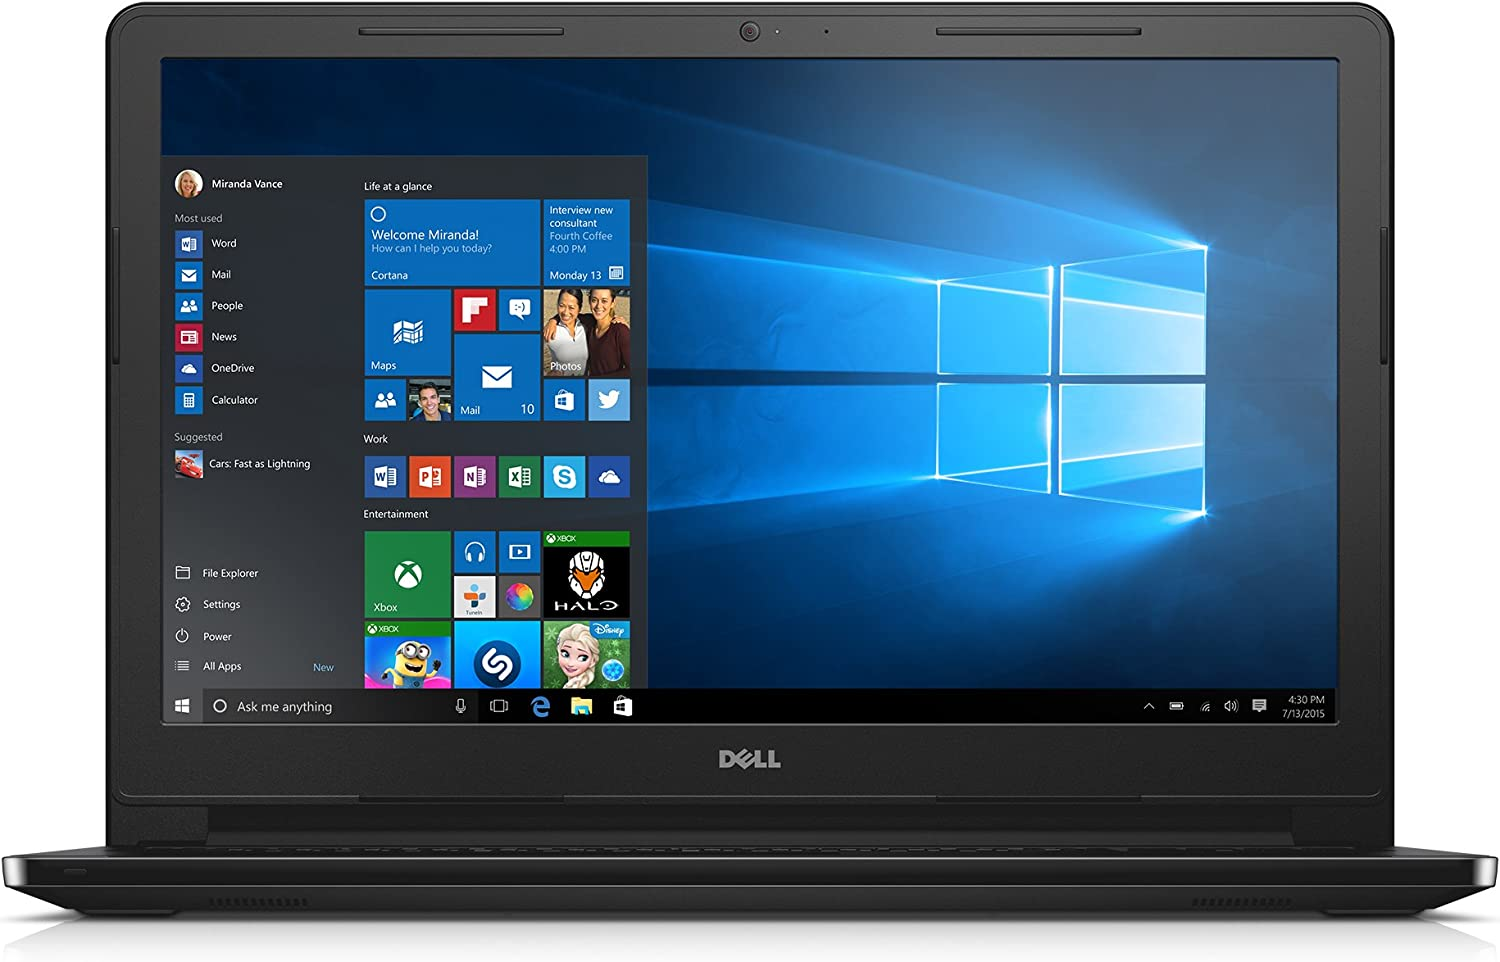 "Dell Inspiron 15 3000 i3552-4041BLK Laptop (Windows 10, Intel Celeron N3050, 15.6"" LED-lit Screen, Storage: 500 GB, RAM: 4 GB) Black"